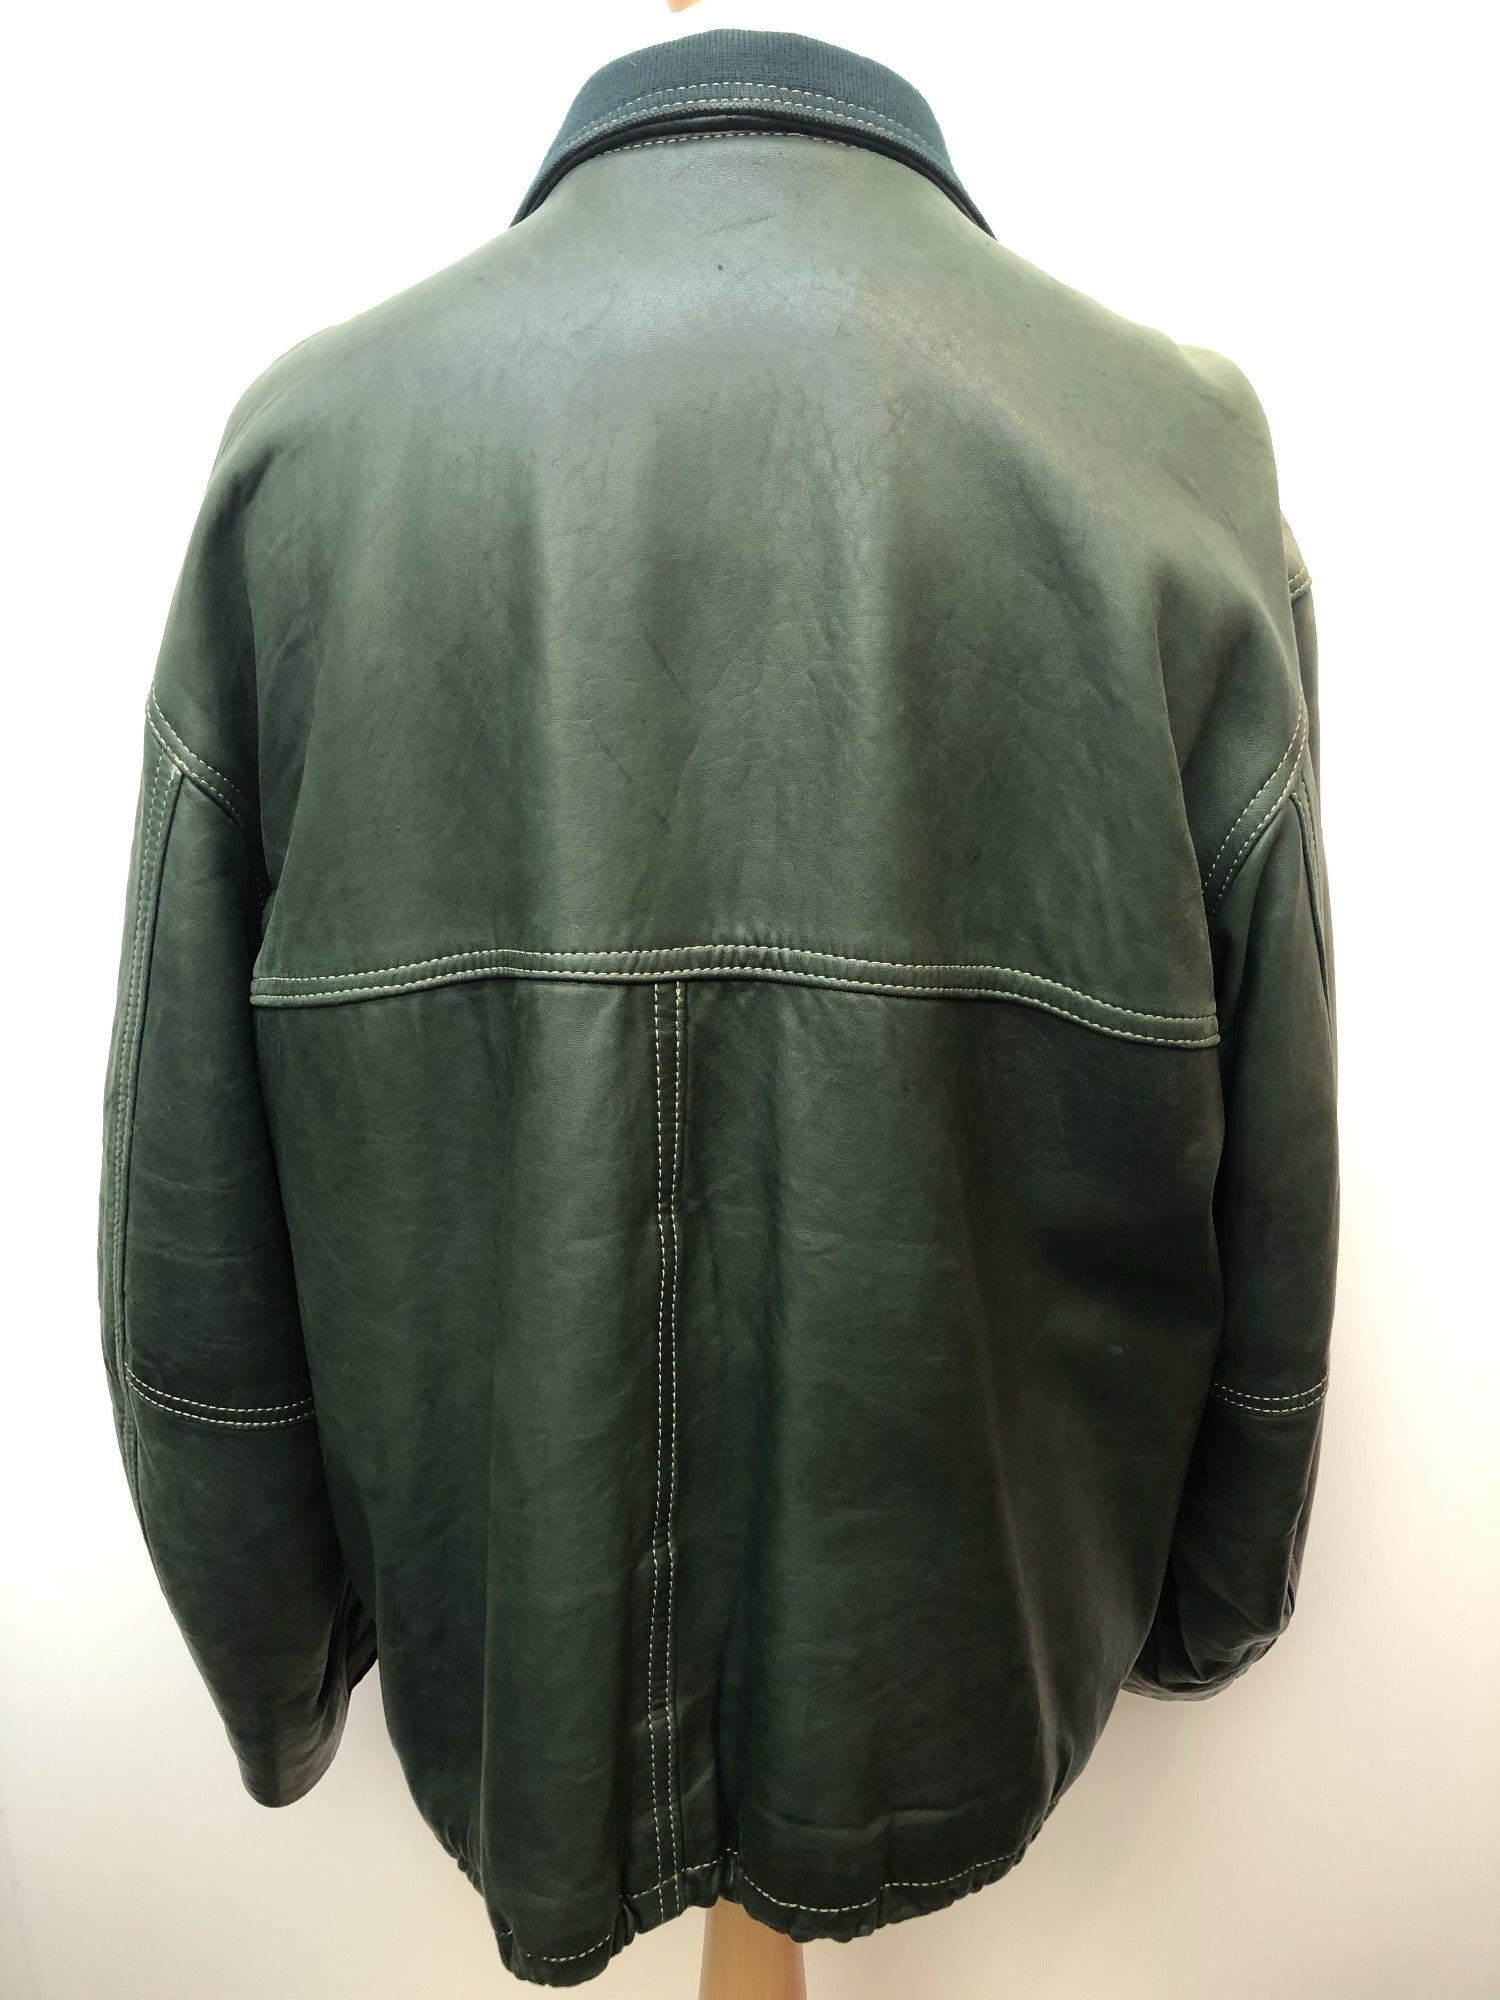 vintage  Redskins  Outdoor jacket  M  leather jacket  leather  jacket  Green Urban Village Vintage